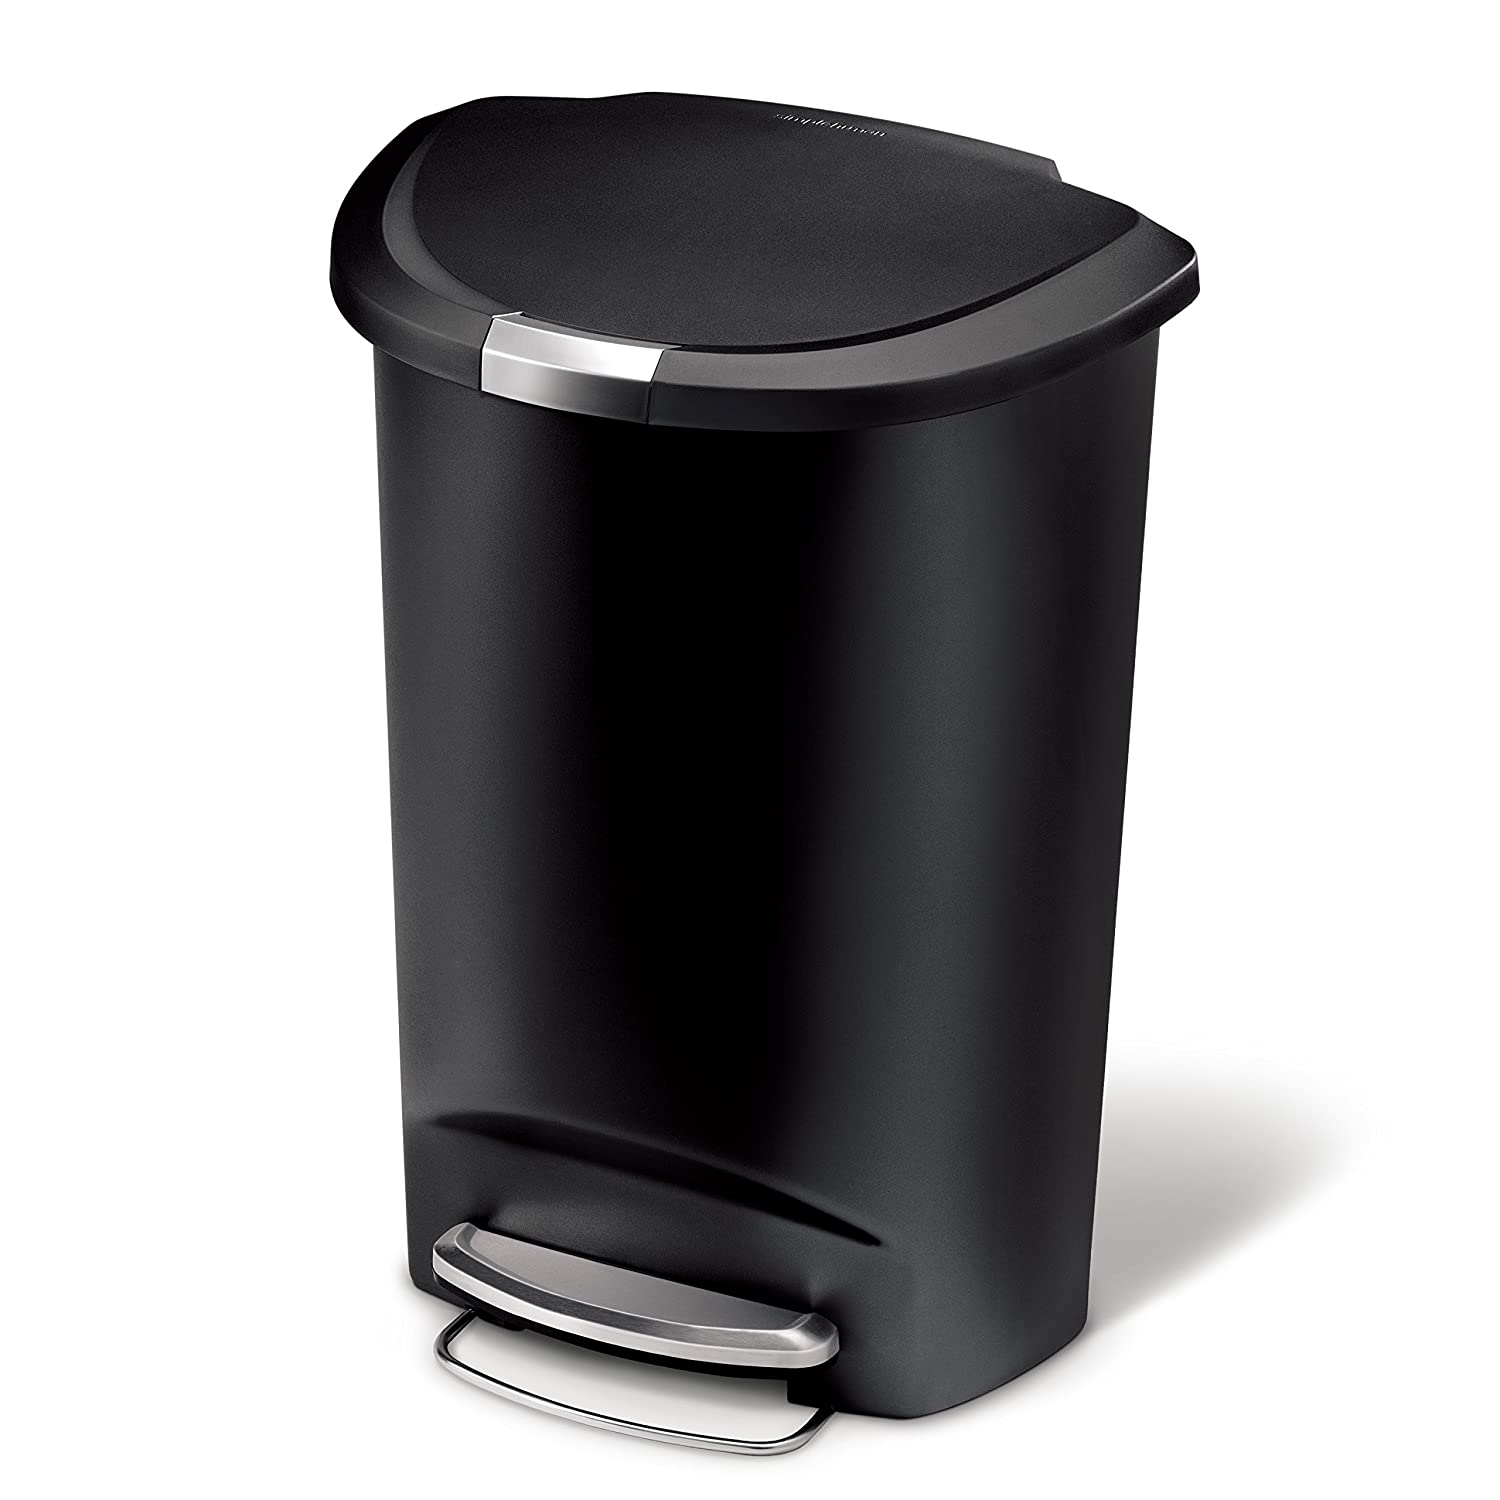 amazoncom simplehuman semi round step trash can black plastic 50 l 13 gal home kitchen. Interior Design Ideas. Home Design Ideas